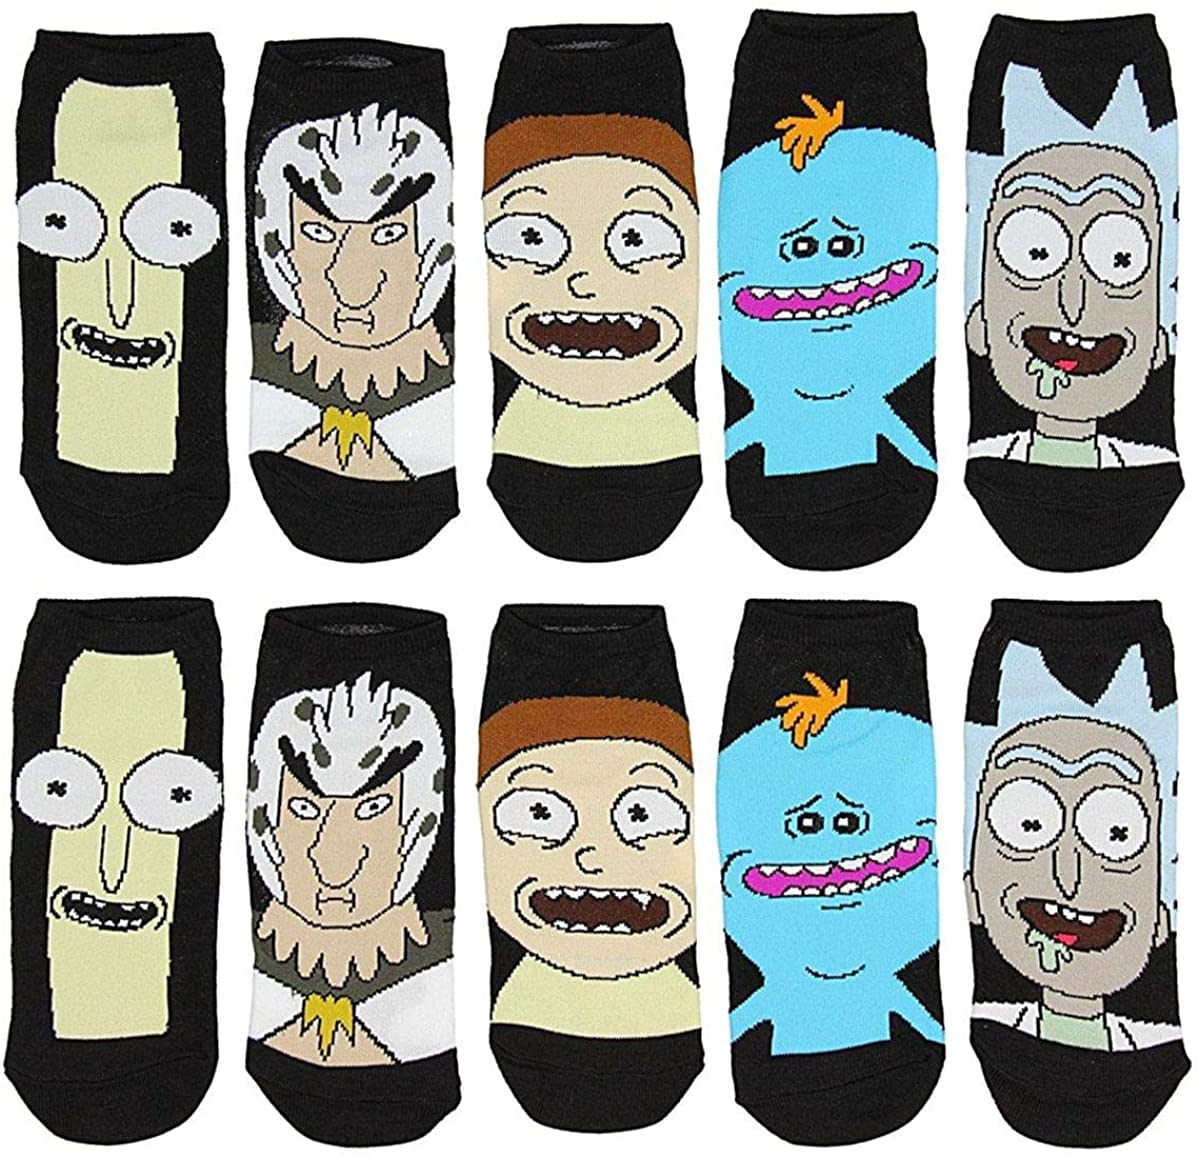 Rick And Morty Characters Women's 5 Pack Black Ankle Socks, Shoe Size 4-10